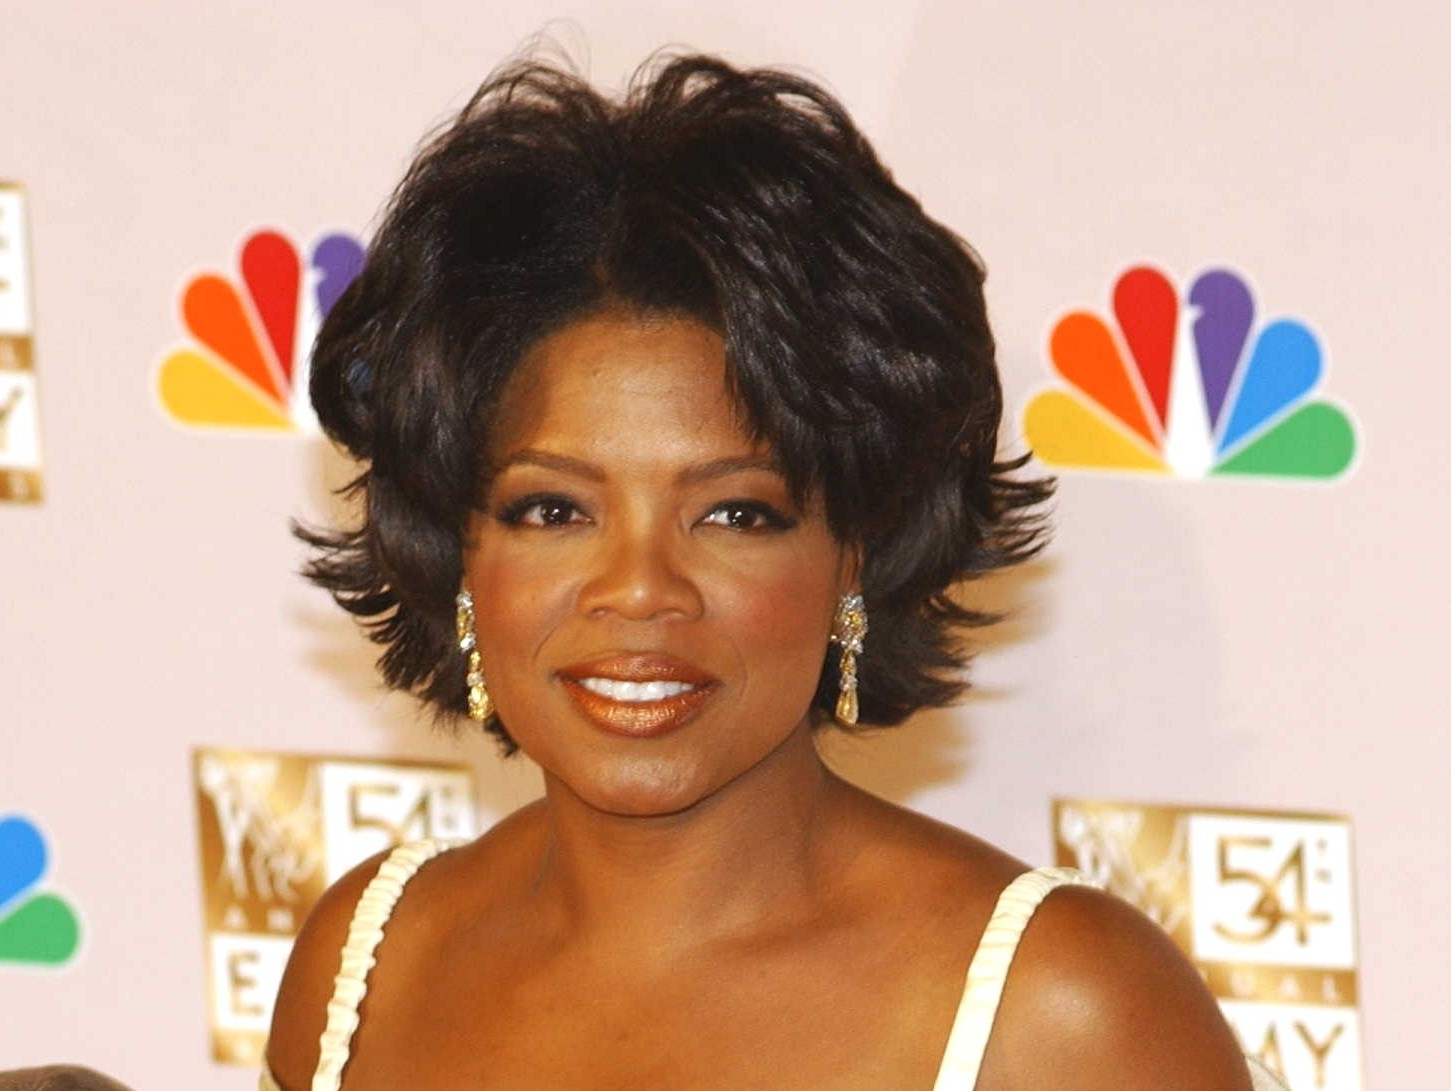 oprah winfrey to present award at the oscars